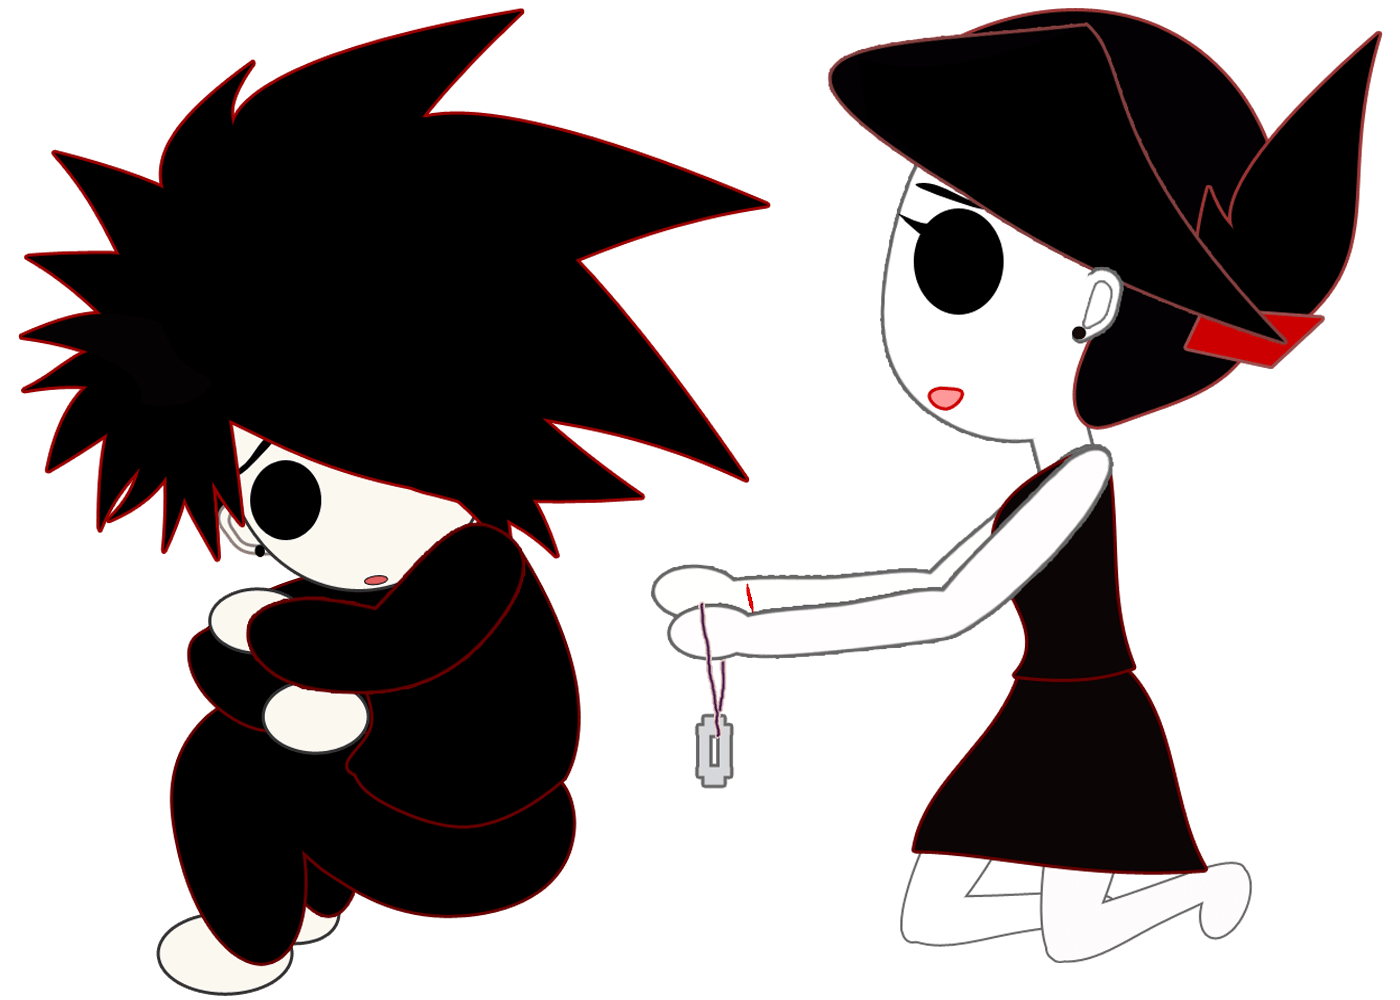 Love emo cartoons wallpaper all hd wallpapers gallerry emo love wallpapers 2015 wallpaper cave image source from this voltagebd Gallery